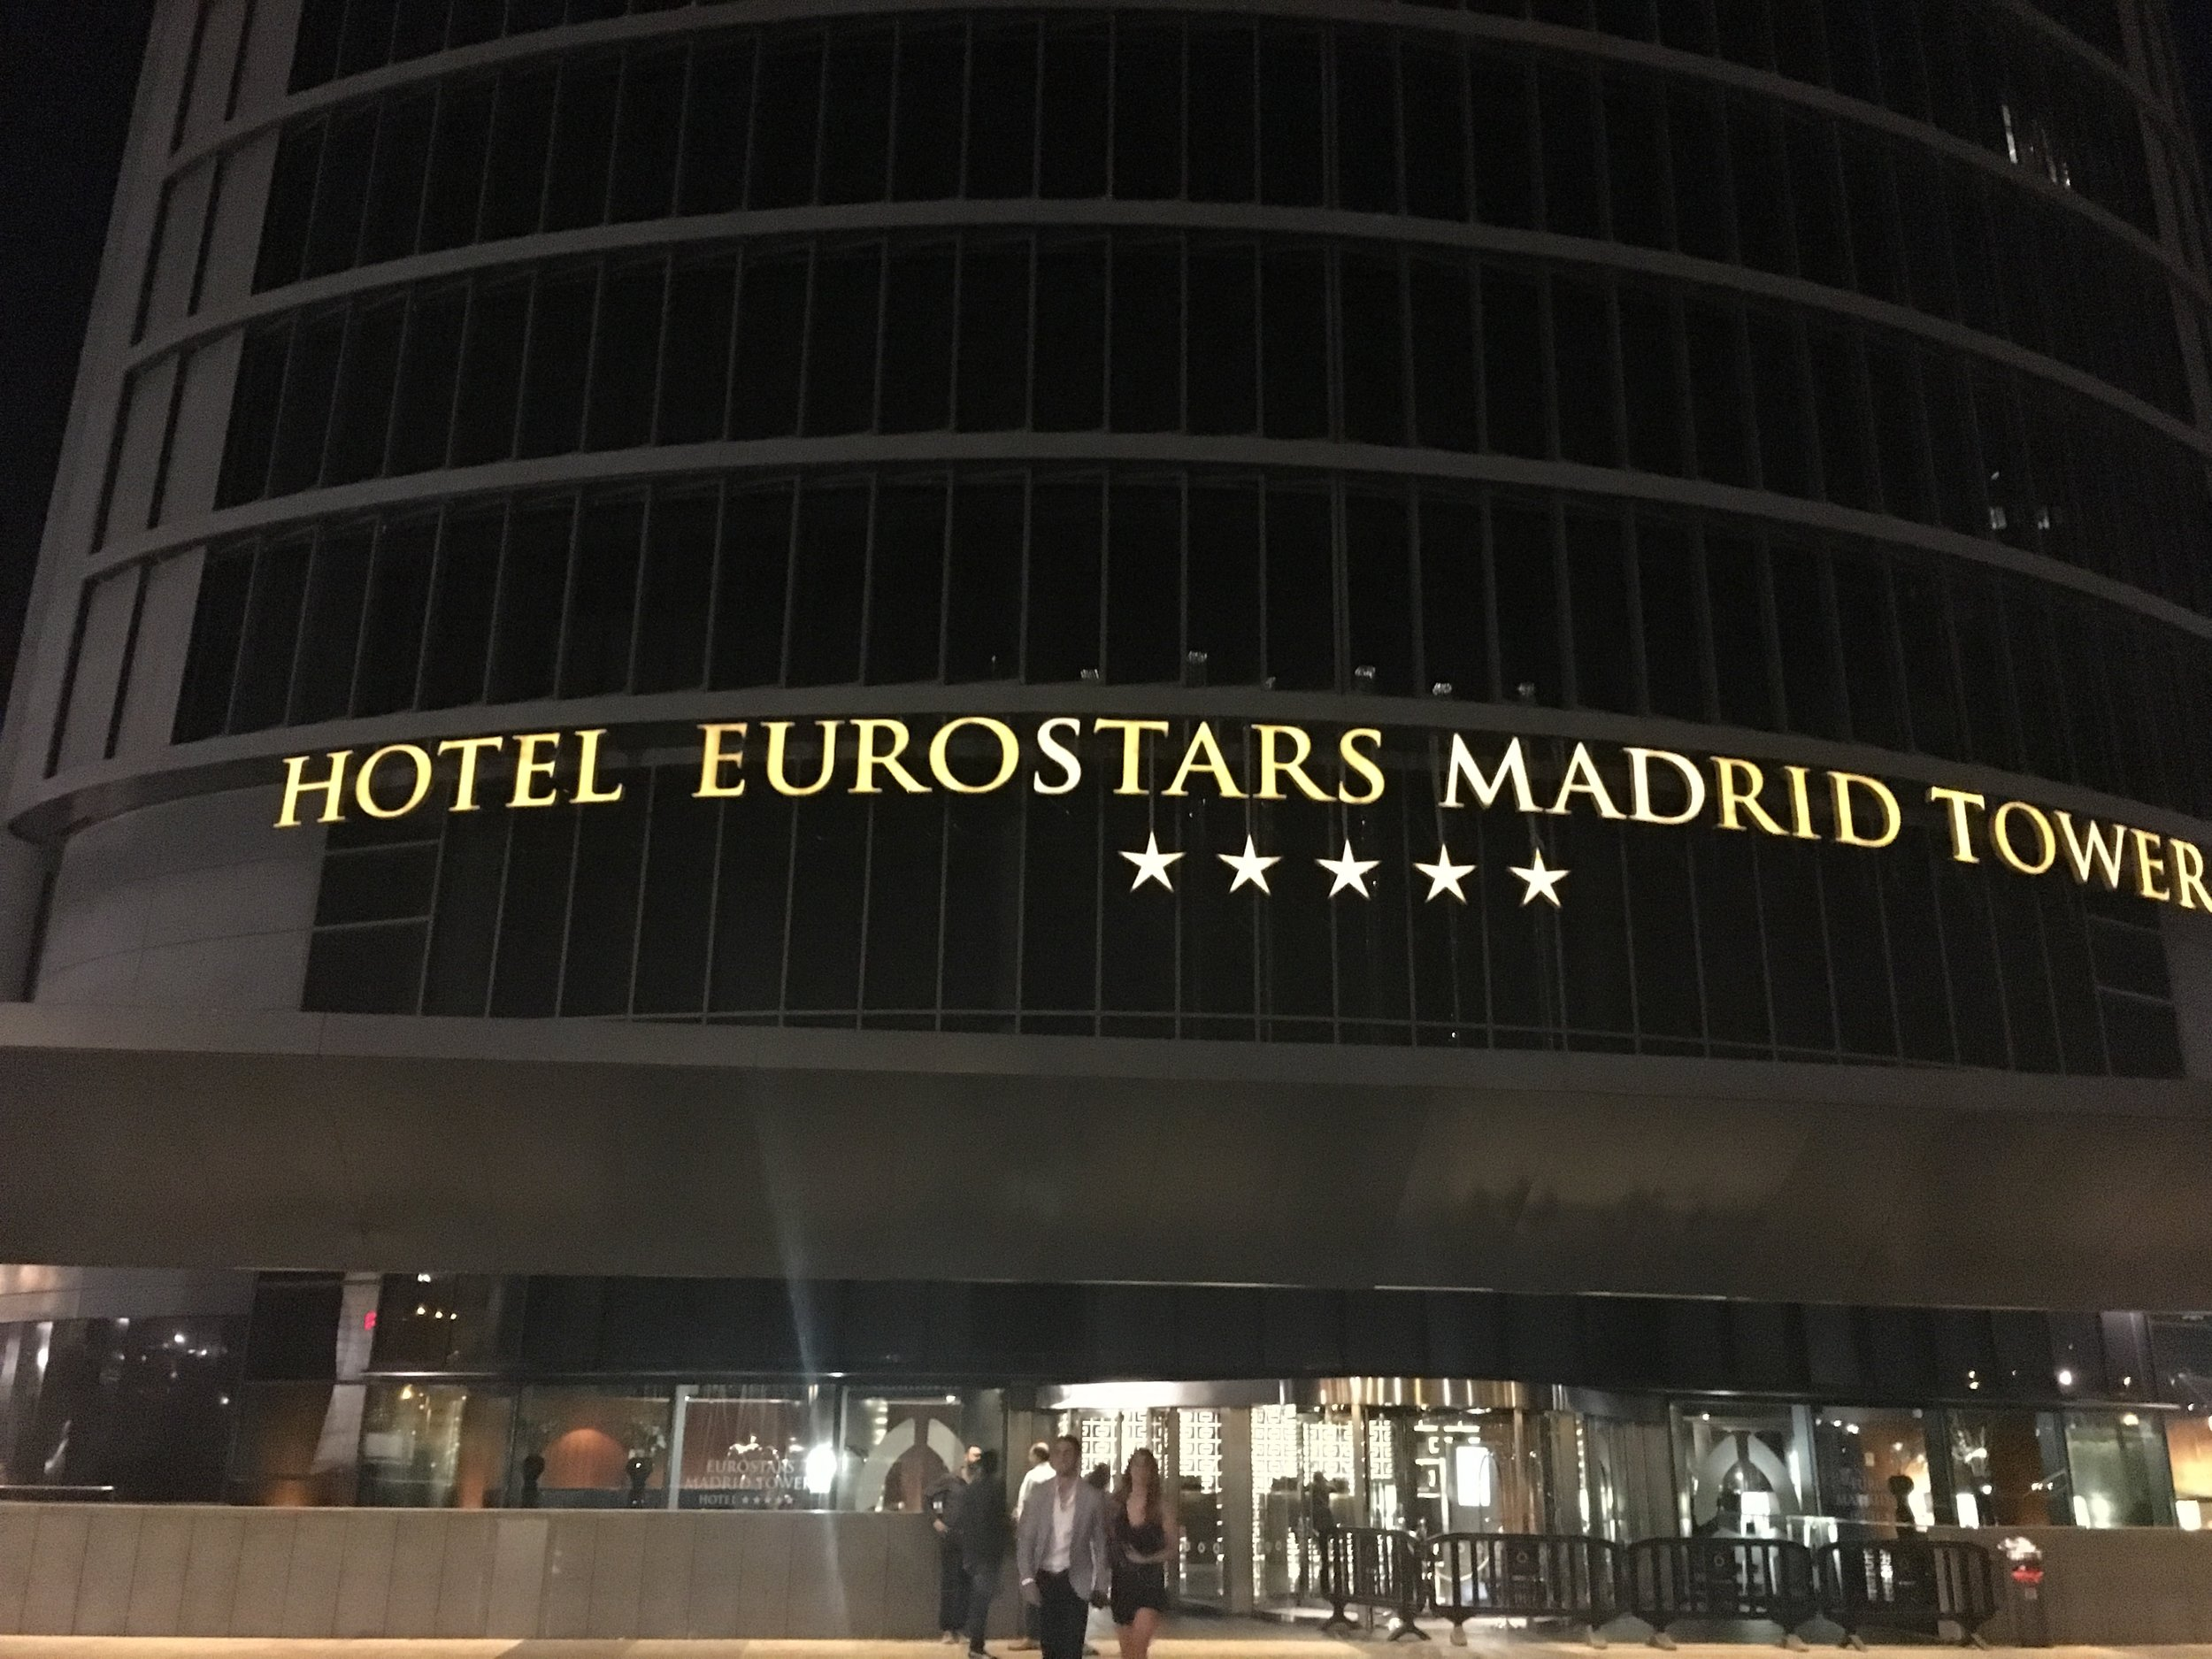 EurostarsMadrid Tower